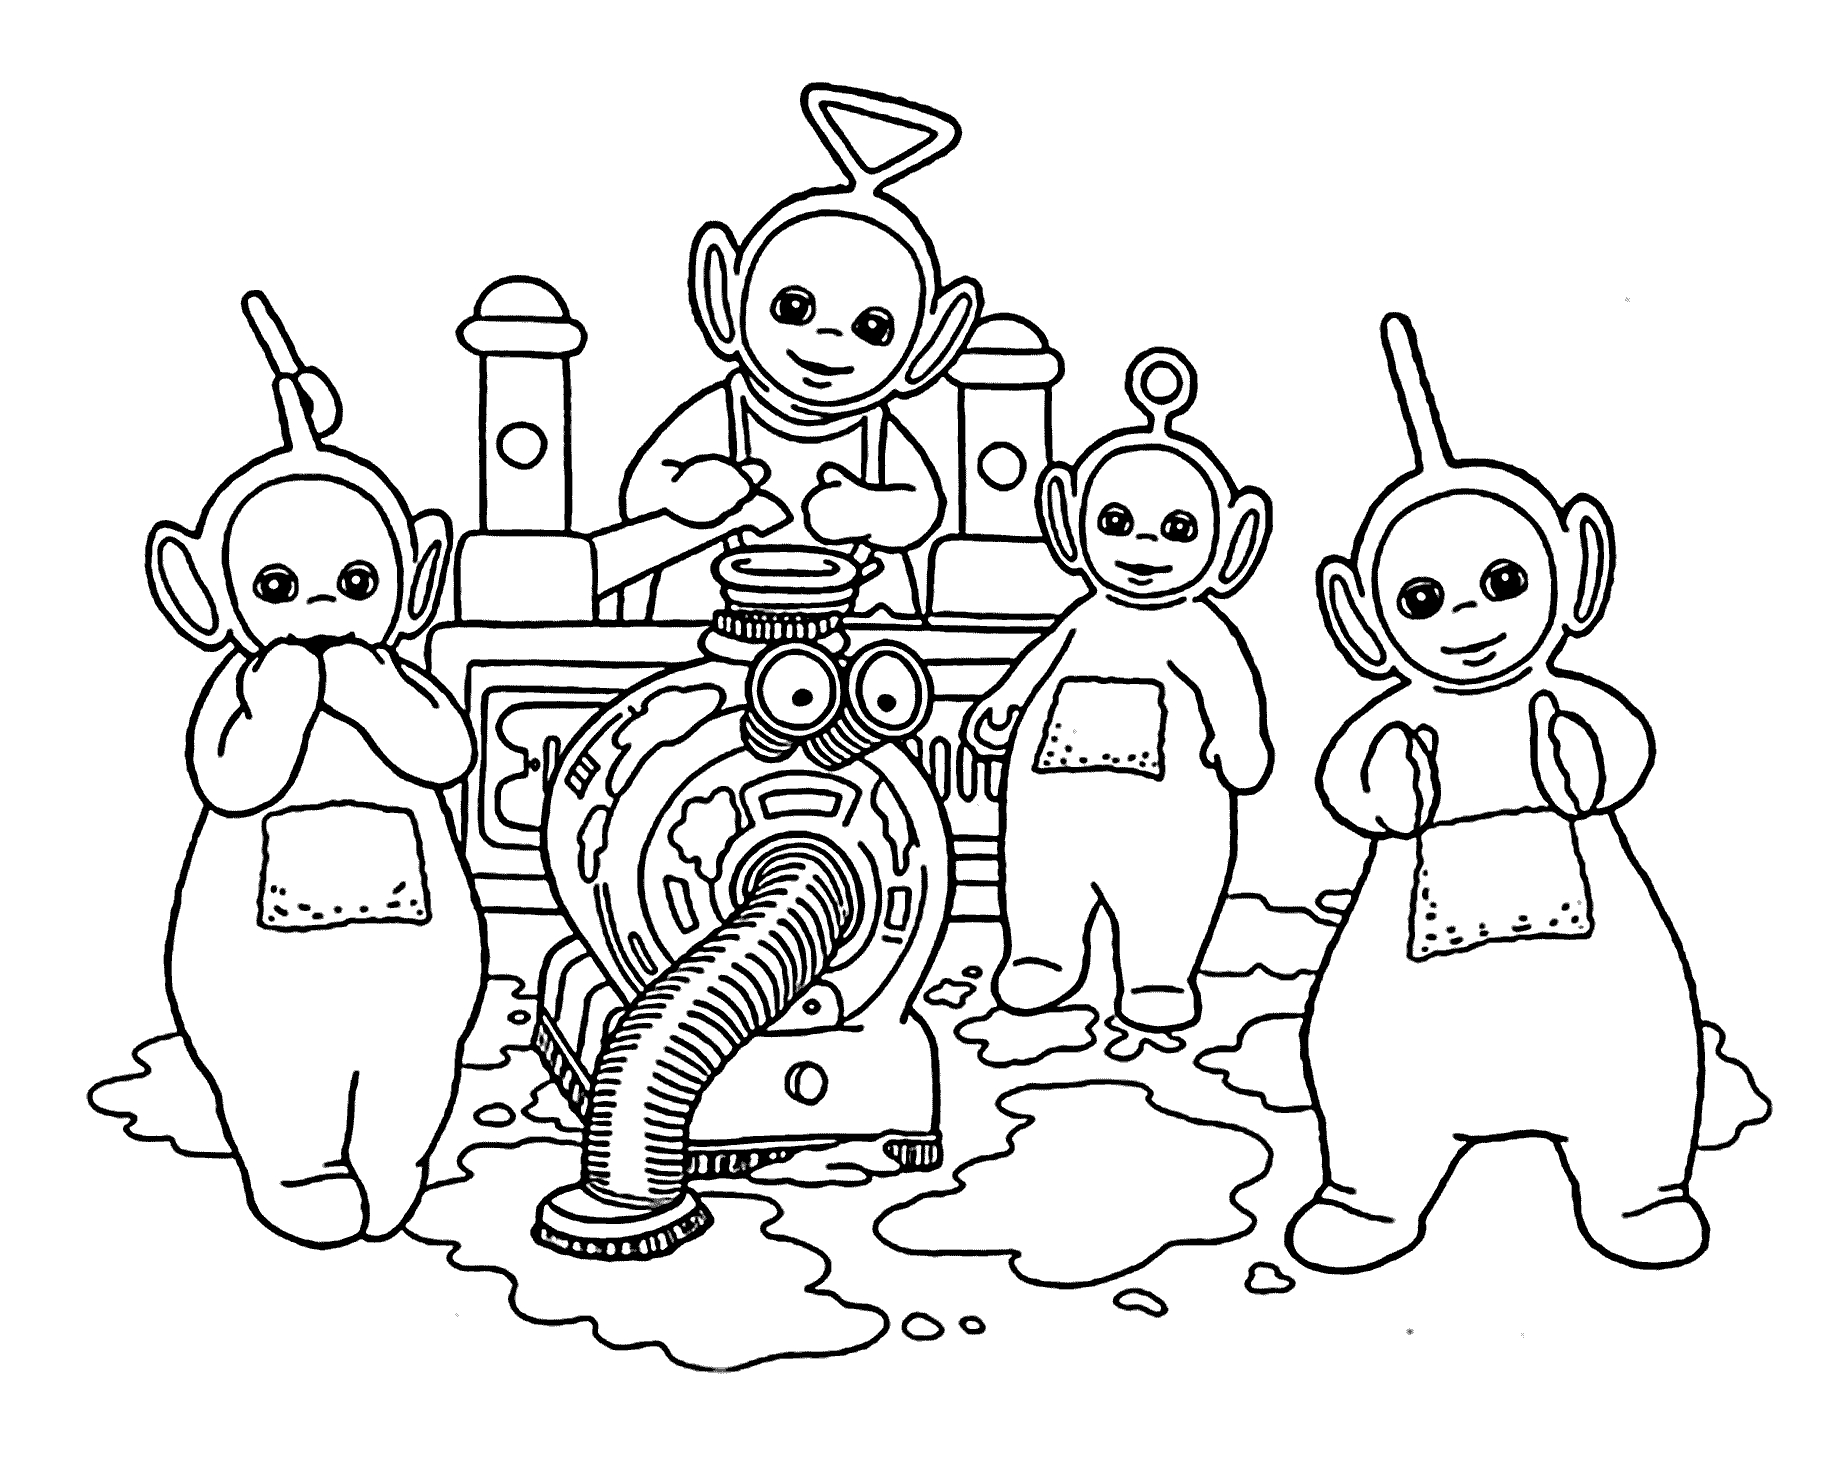 24 Teletubbies Coloring Pages Collections | FREE COLORING PAGES - Part 3